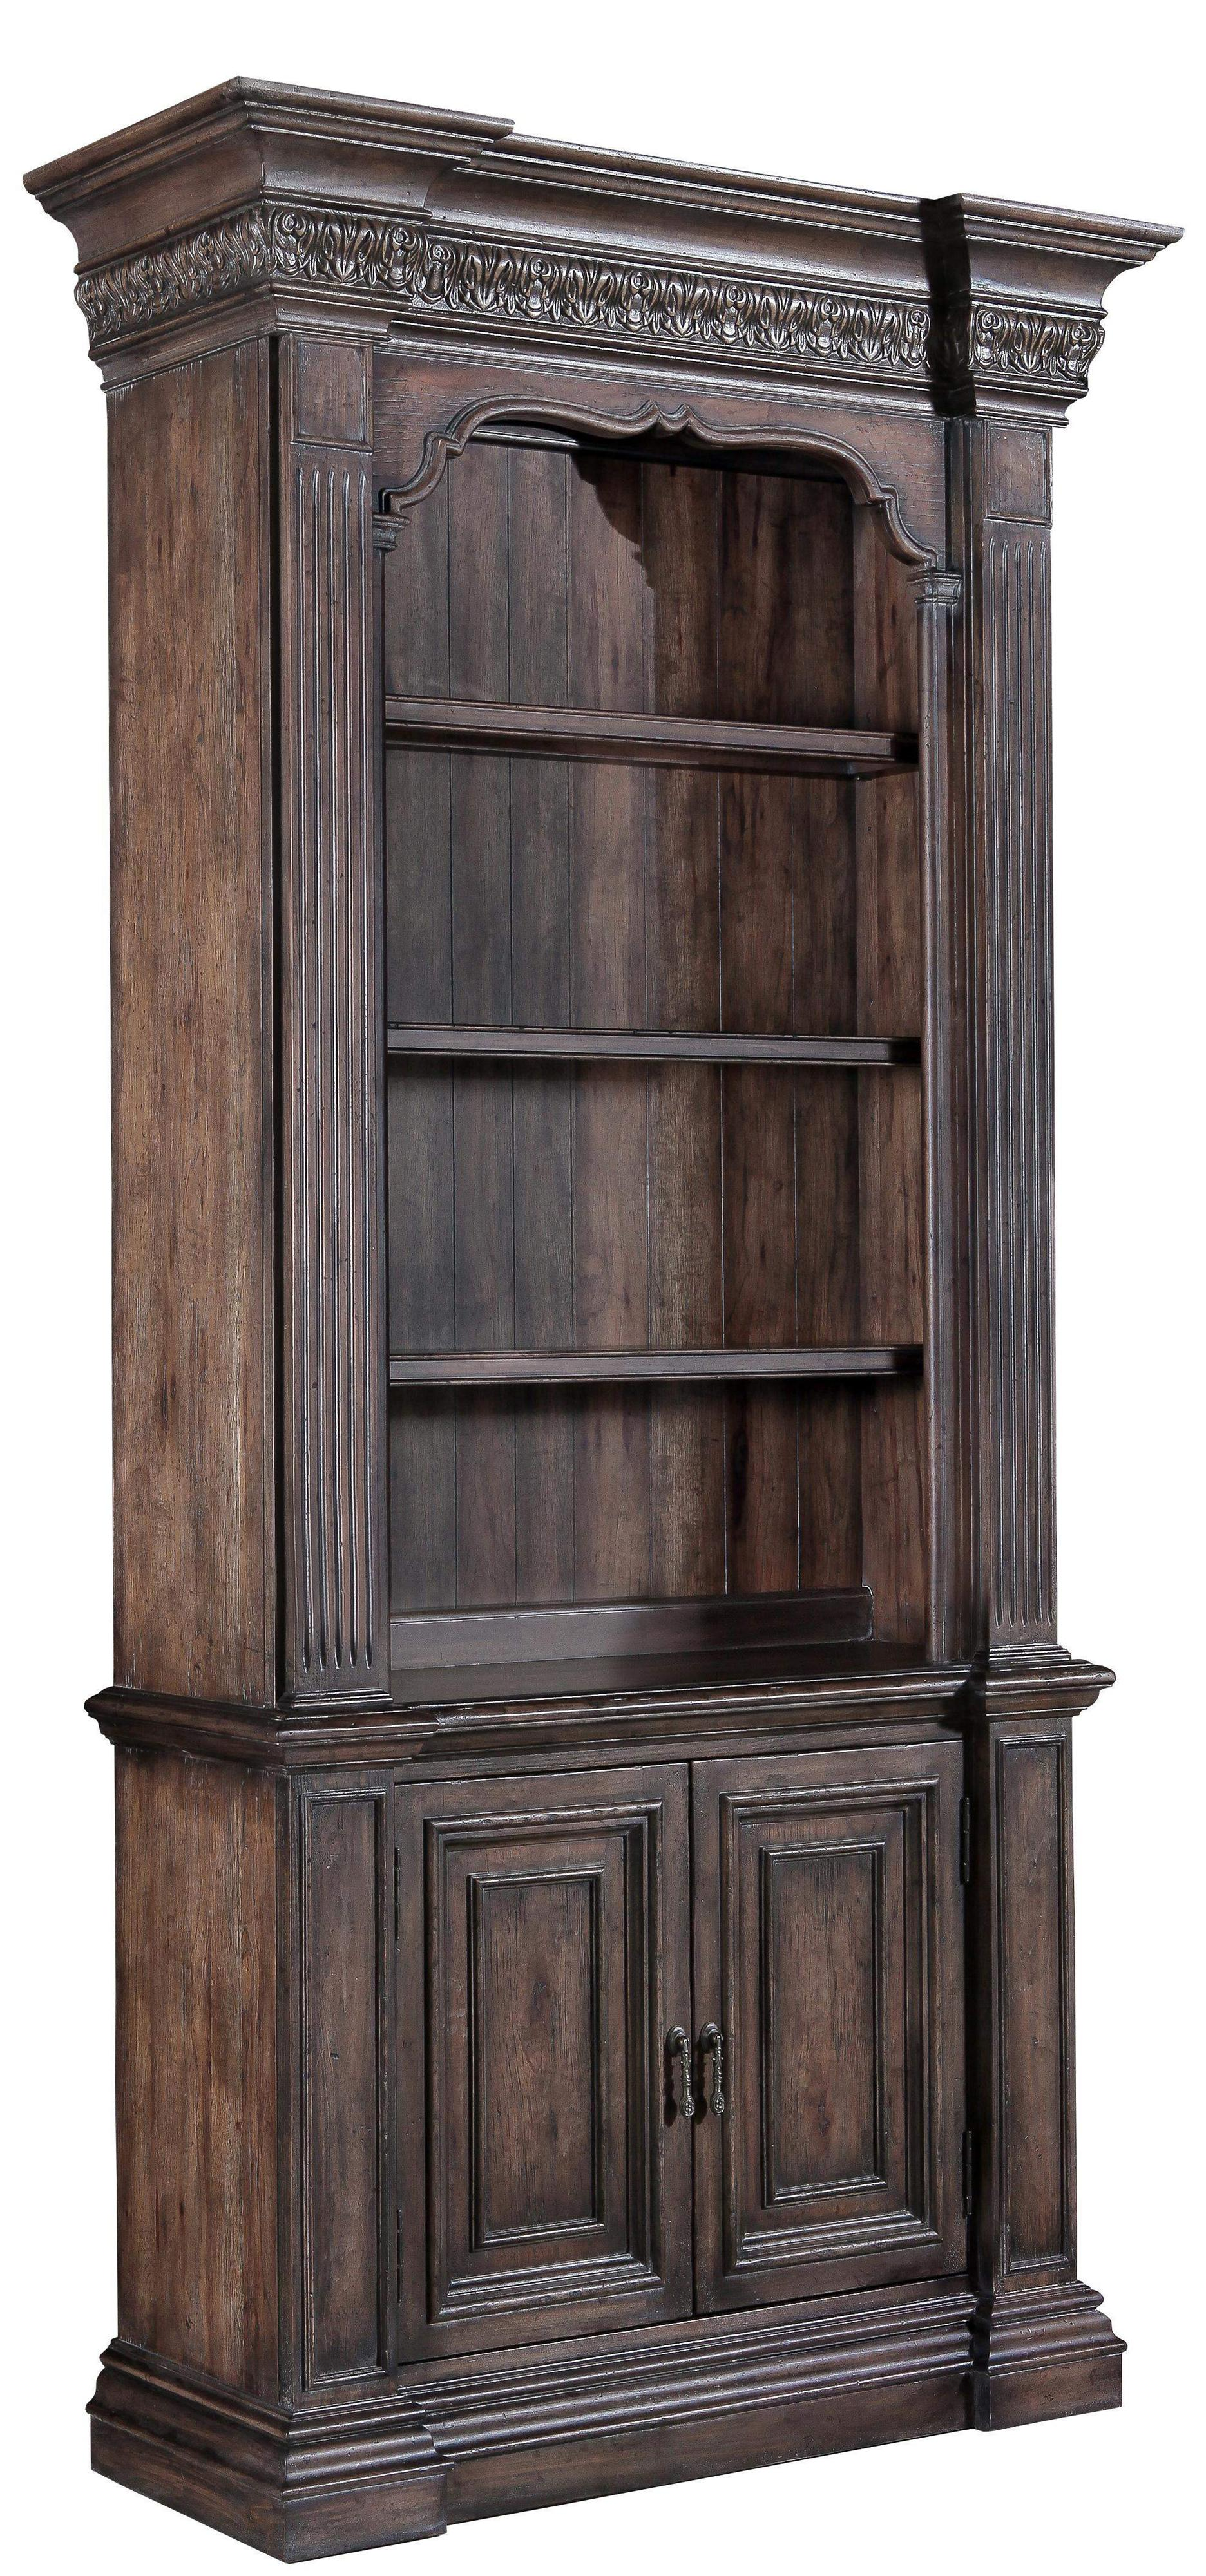 Hooker Furniture Rhapsody Bookcase - Item Number: 5070-10445